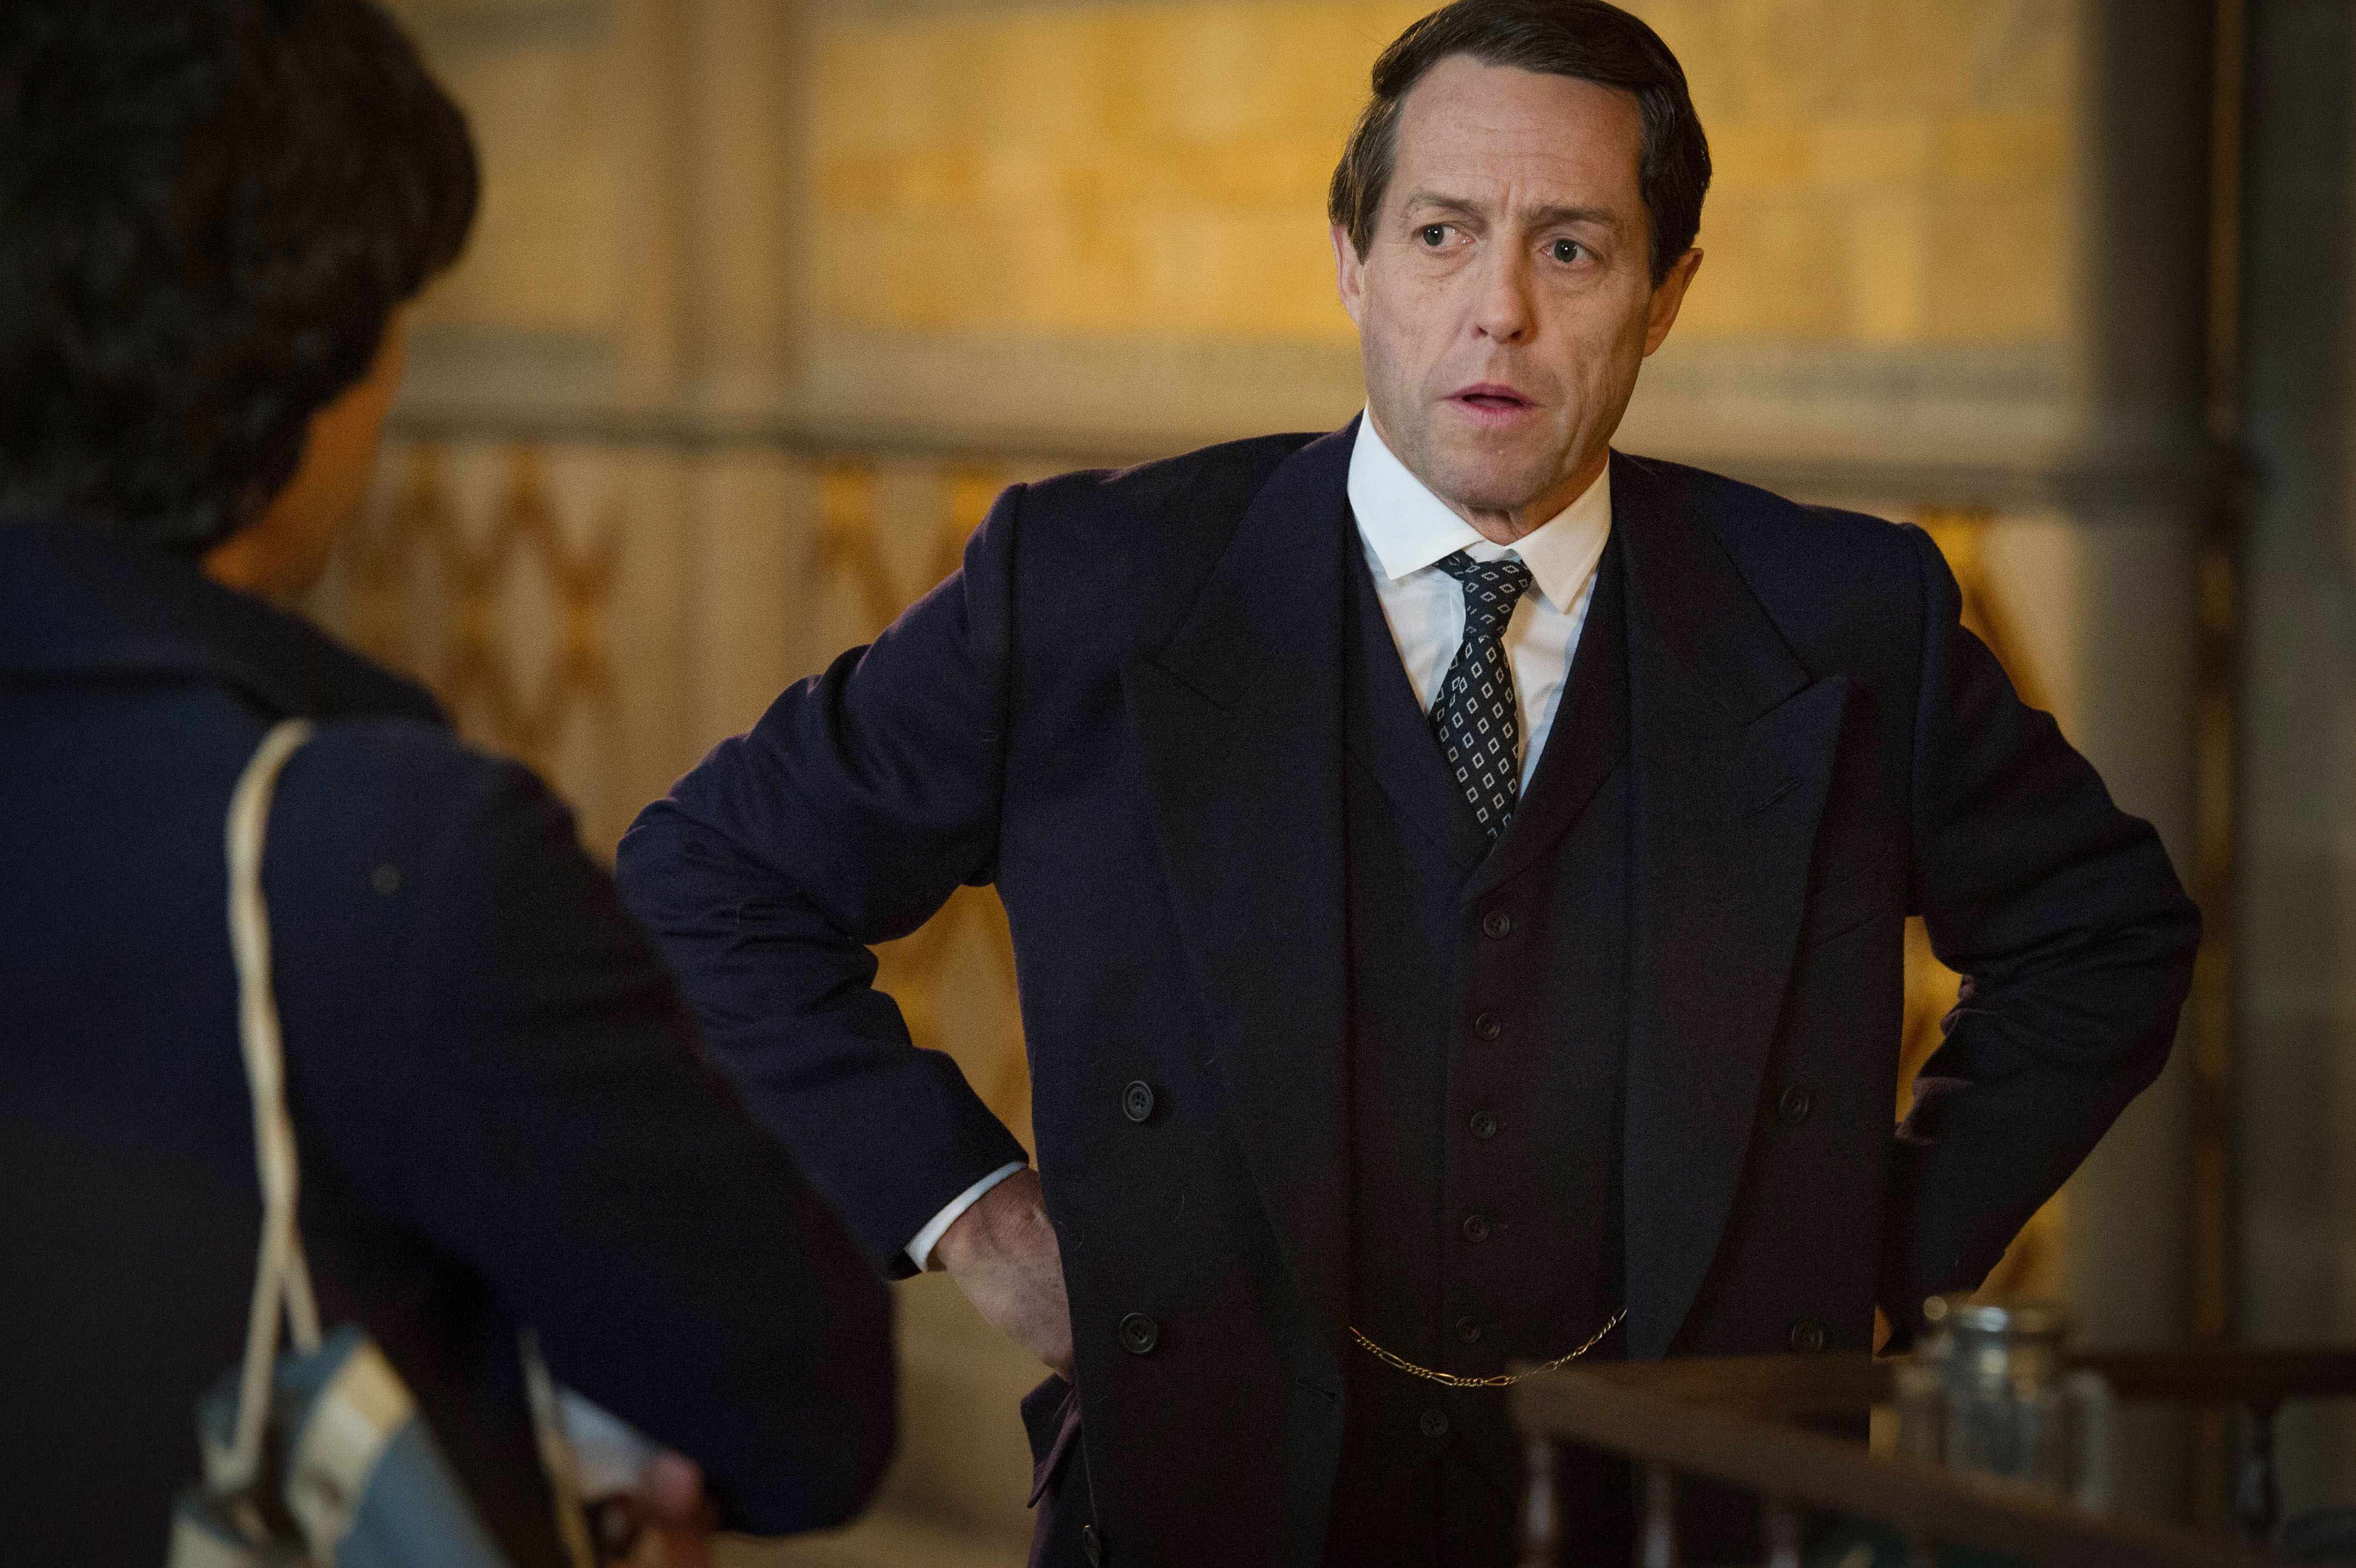 WARNING: Embargoed for publication until 16:00:01 on 27/04/2018 - Programme Name: A Very English Scandal - TX: n/a - Episode: n/a (No. 1) - Picture Shows: ***EMBARGOED UNTIL 16:00hrs 27th APRIL 2018*** Norman Scott (BEN WHISHAW), Jeremy Thorpe (HUGH GRANT) - (C) Blueprint Television Ltd - Photographer: Ludovic Robert  TL